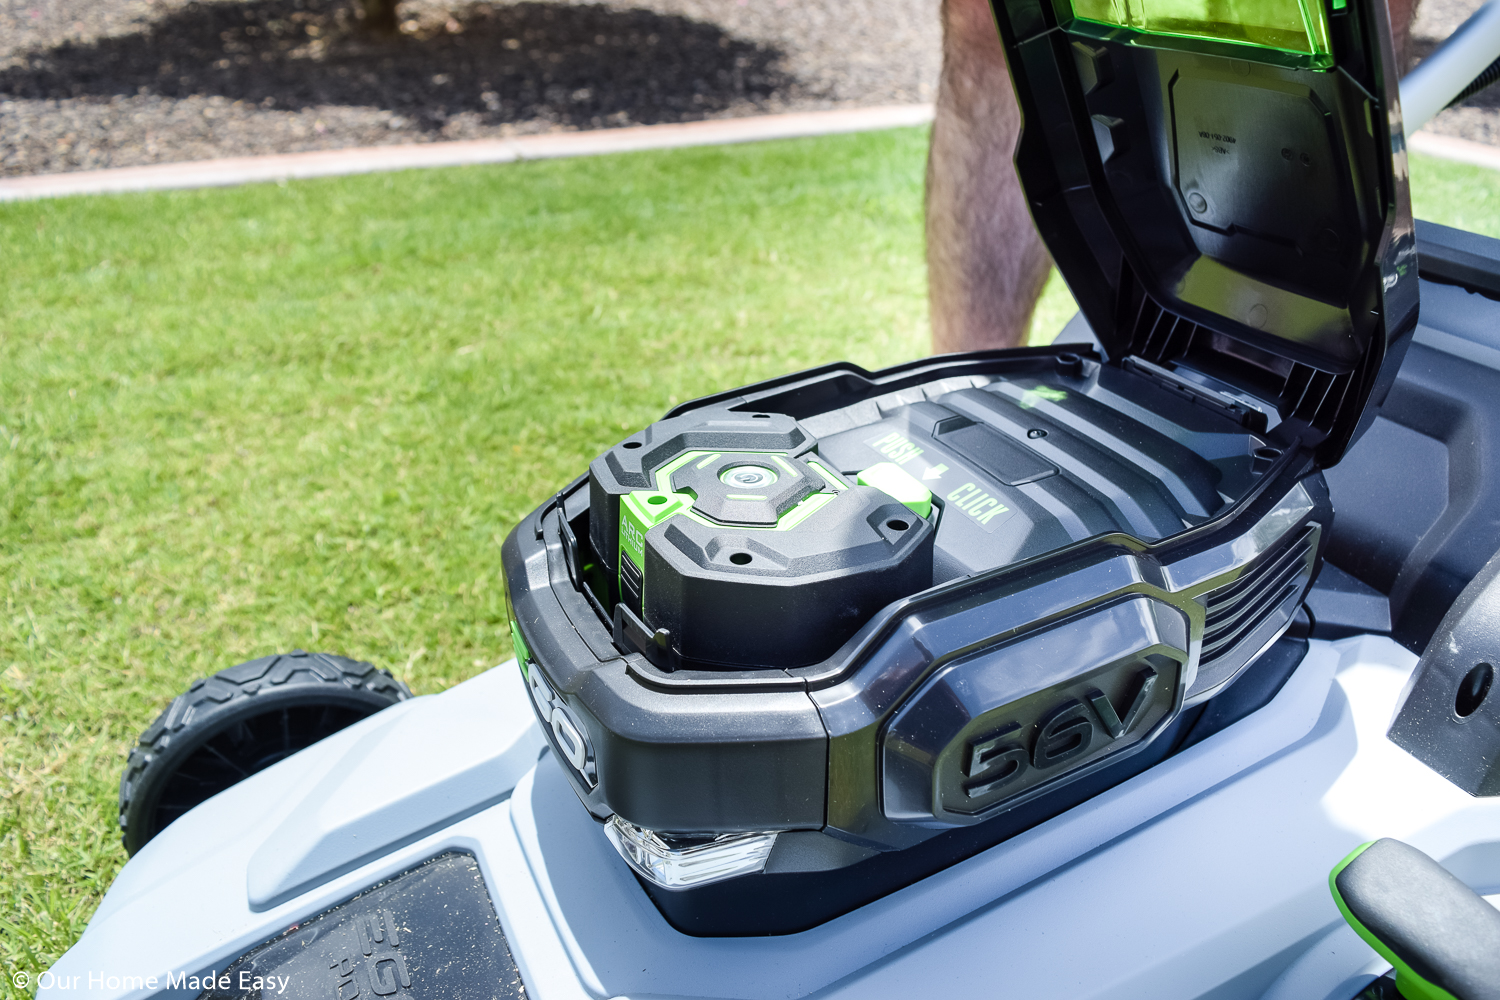 The battery powered EGO lawnmower makes mowing the lawn a simple chore